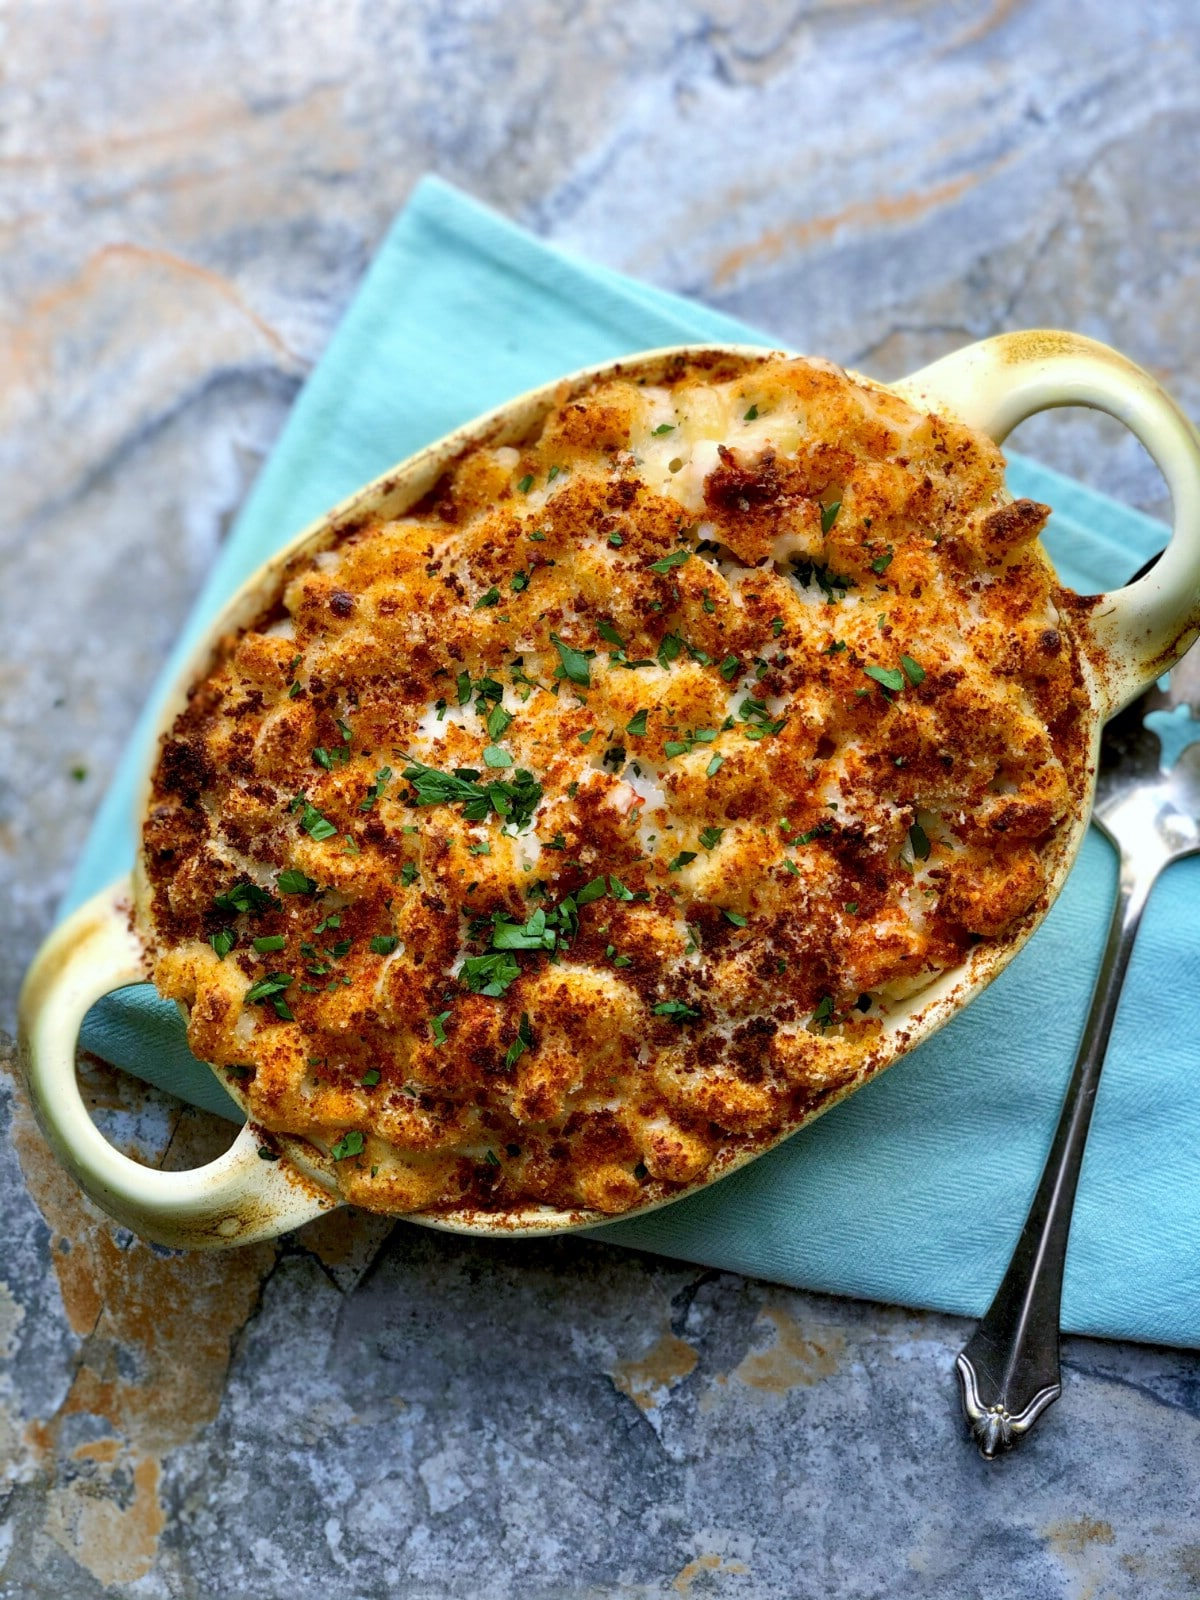 Baking dish filled with lobster mac and cheese